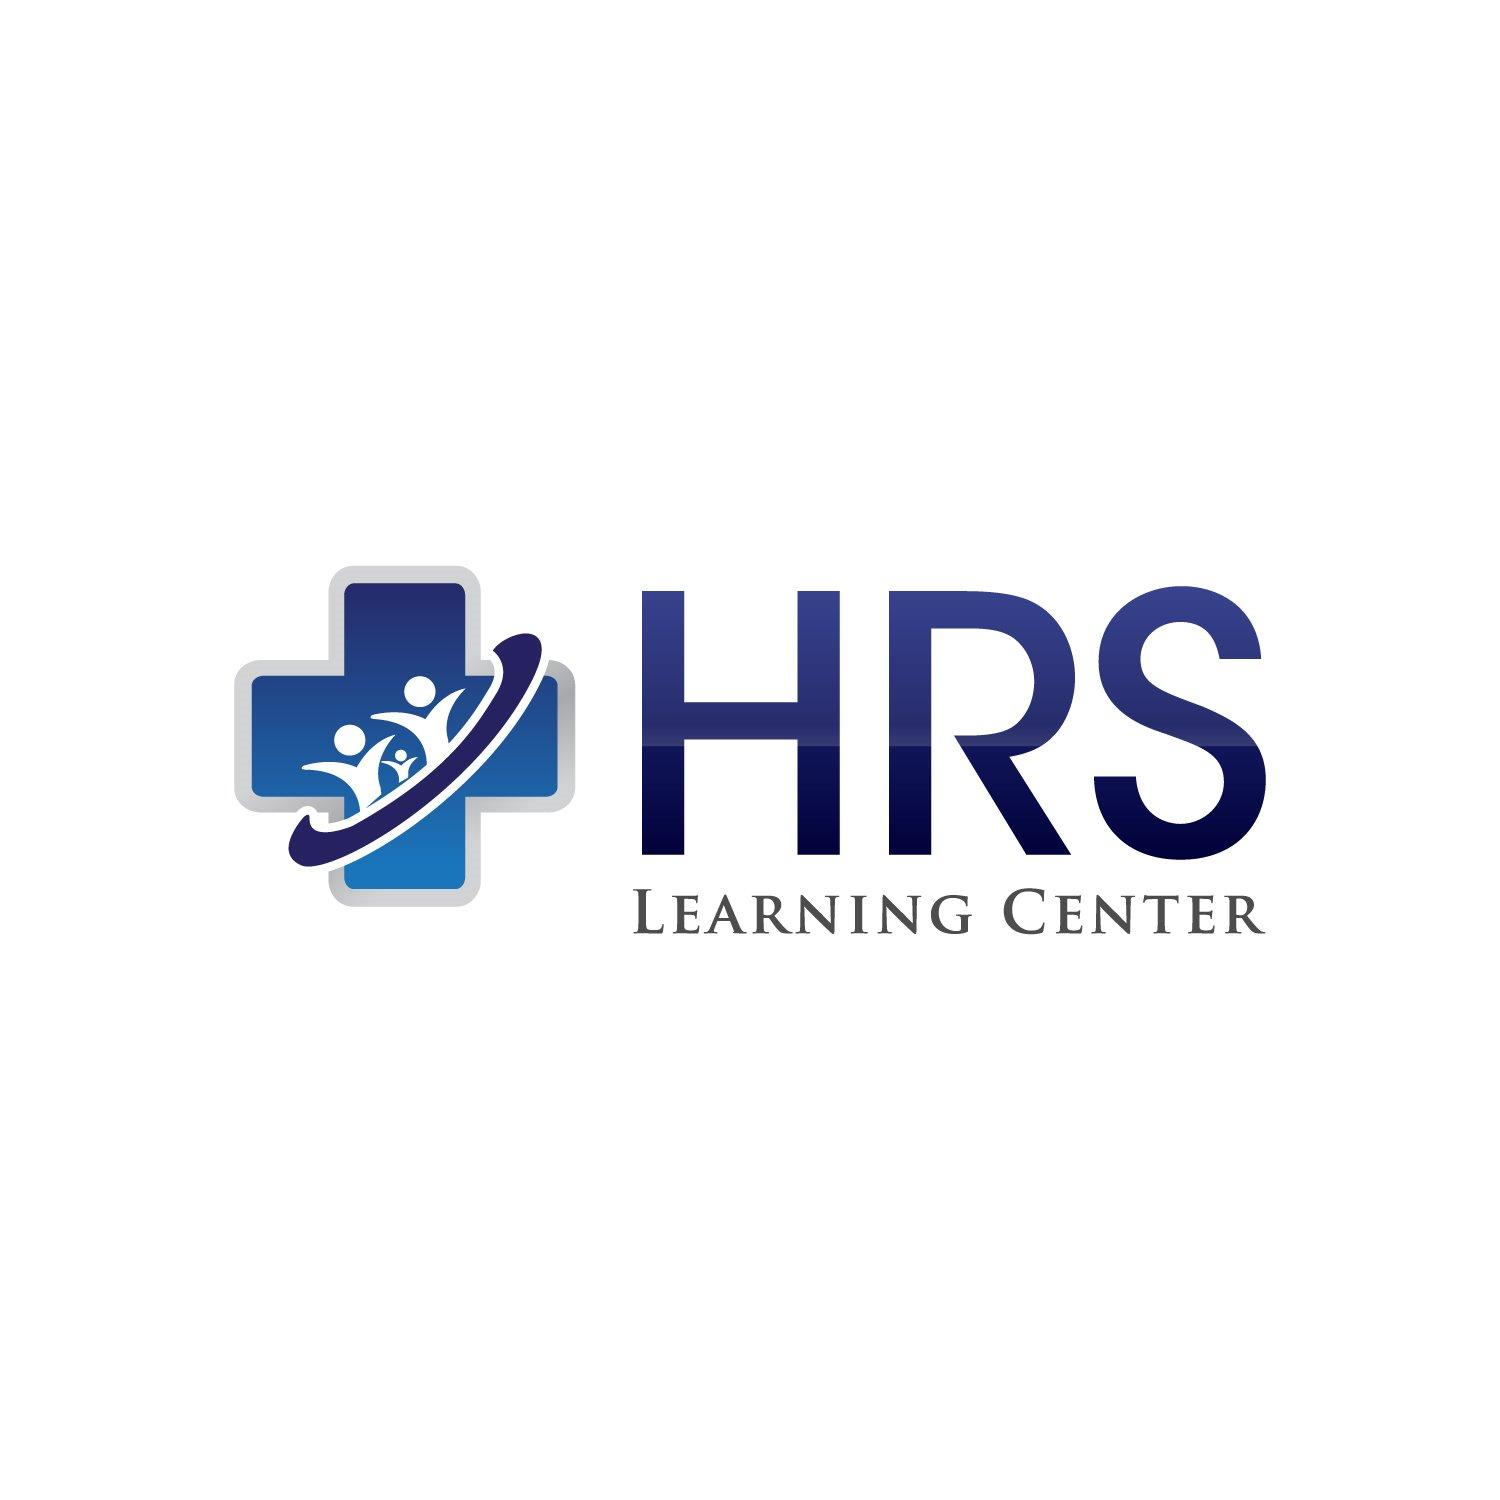 HRS Learning Center image 2